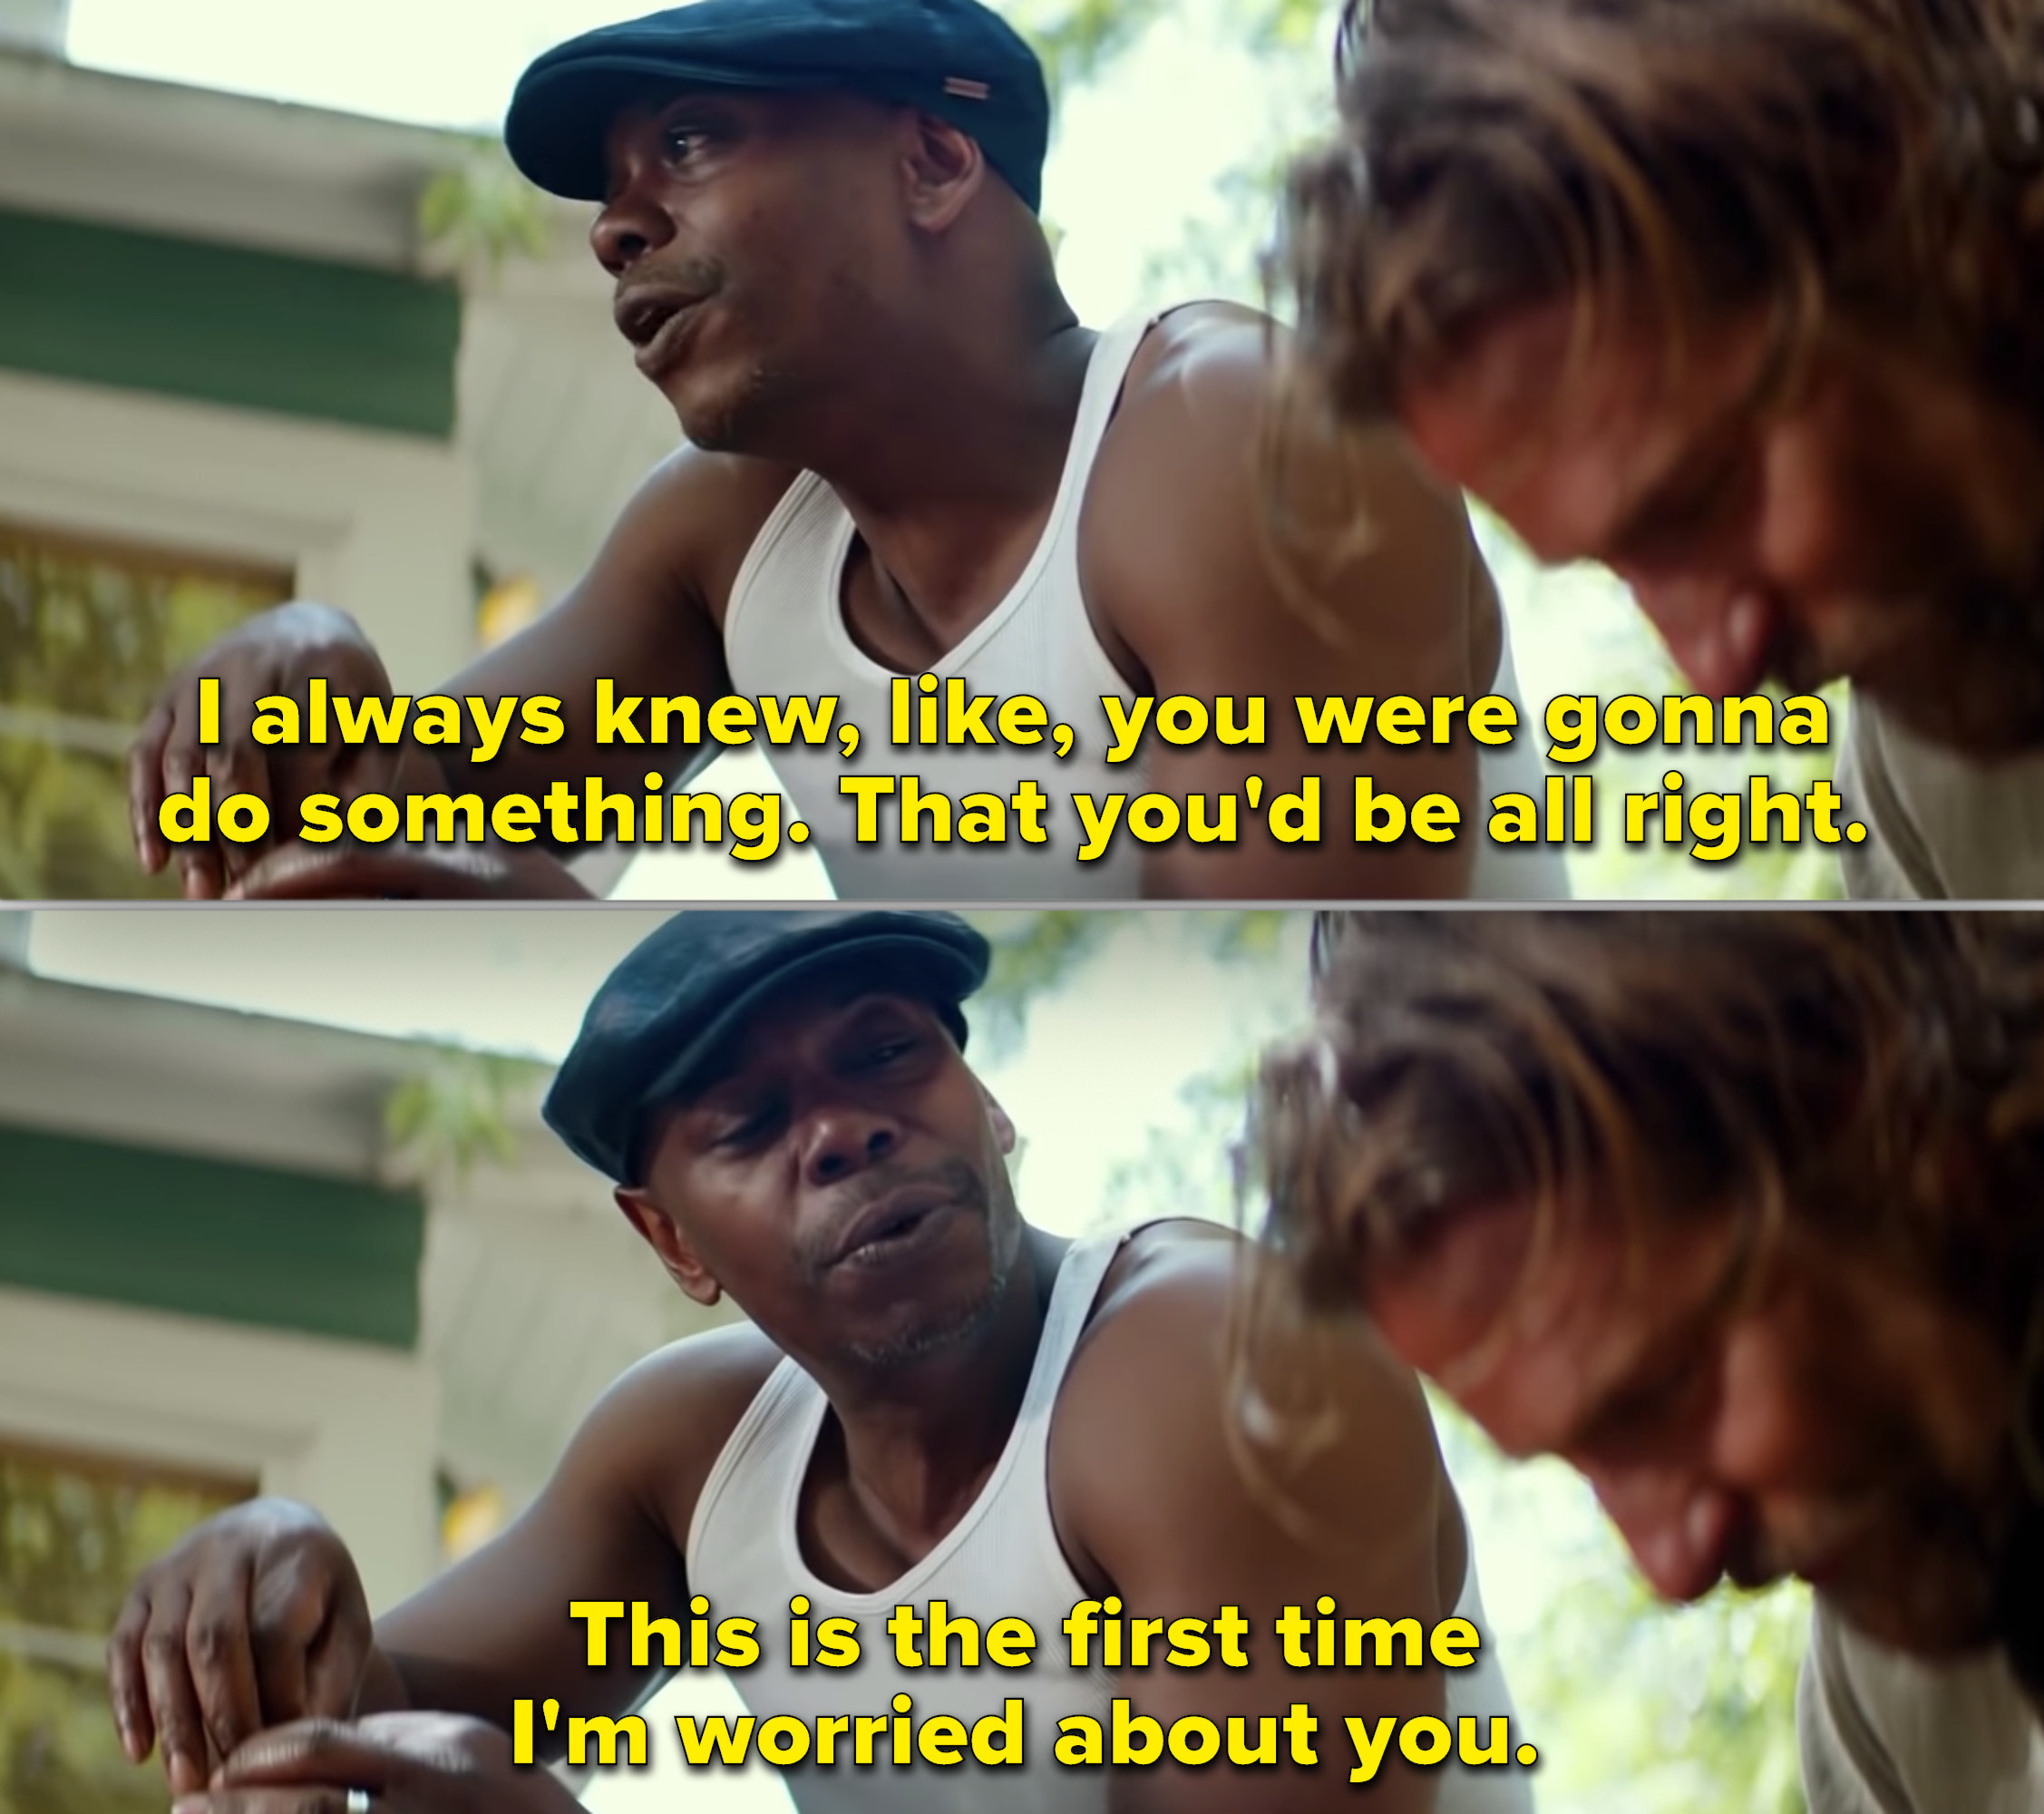 Dave Chapelle talking to Bradley Cooper's character in A Star Is Born